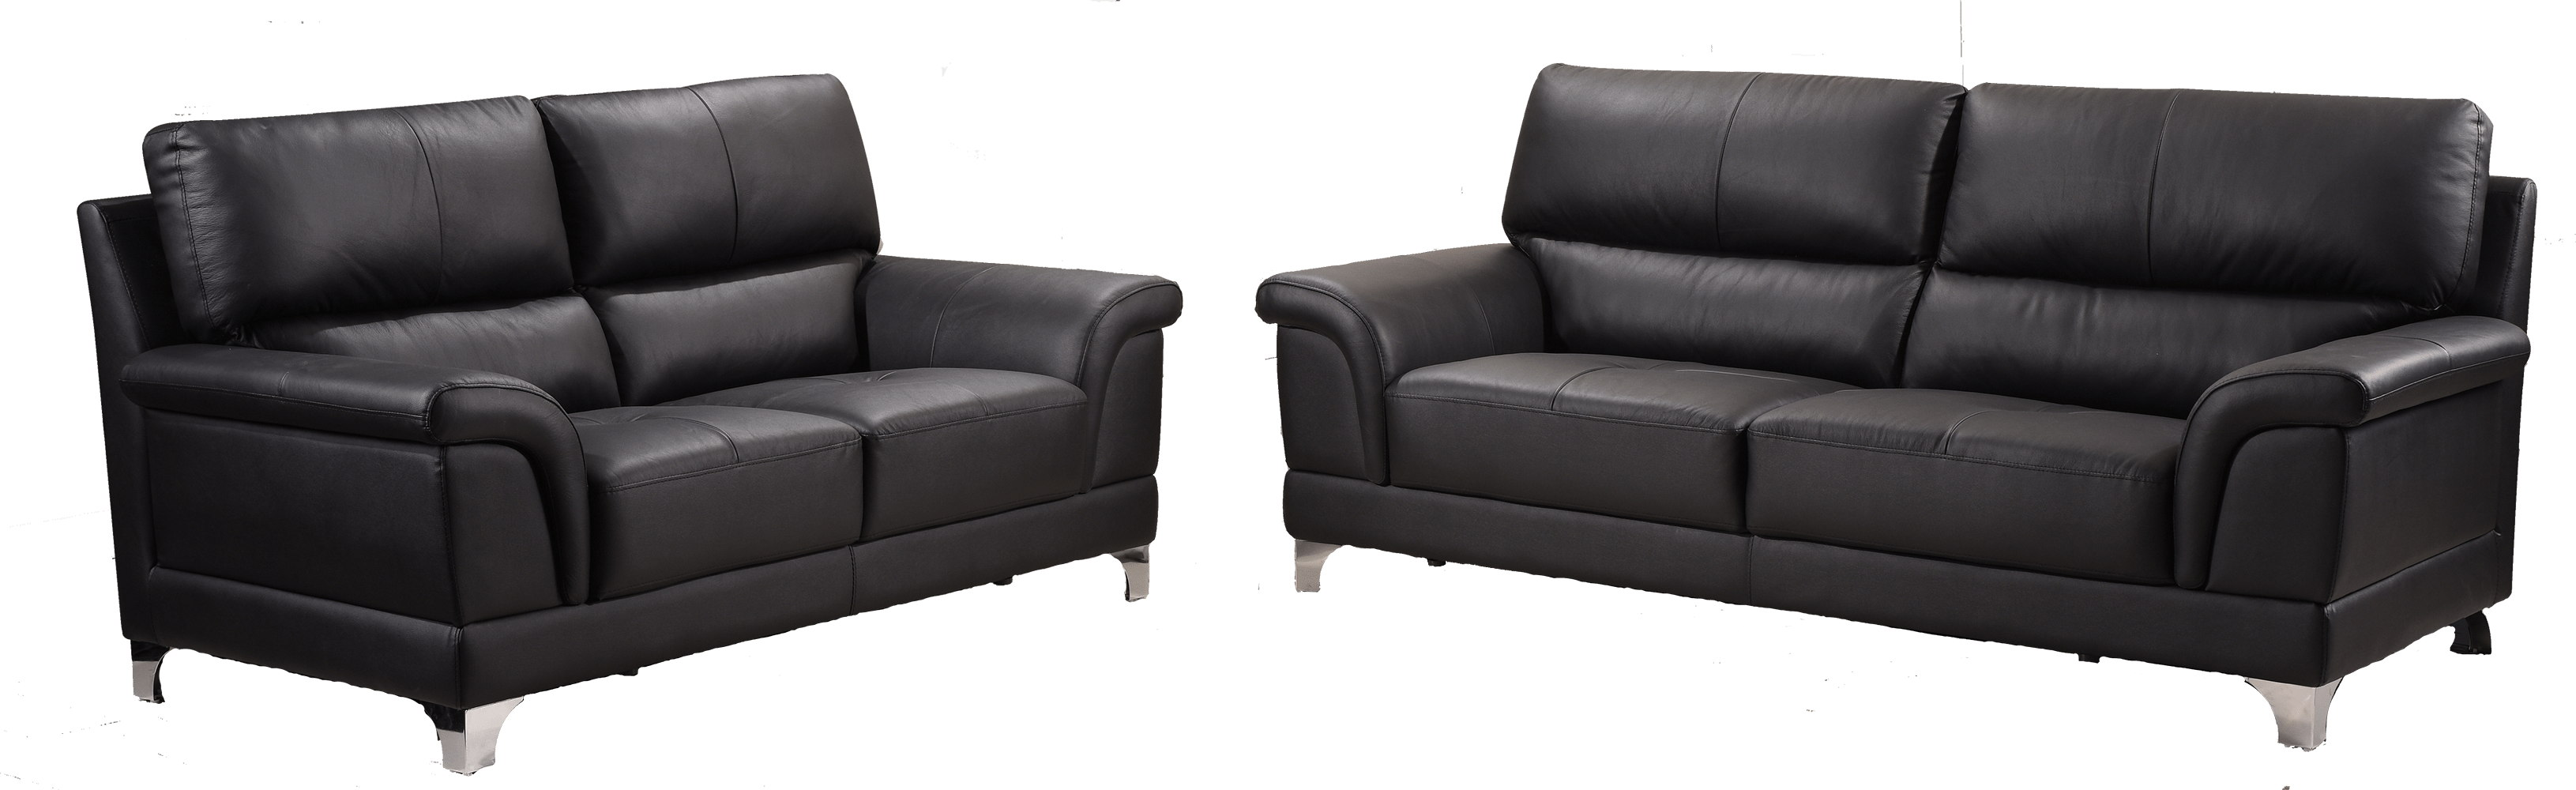 Sofa Set Price Rate Milan 3 432 Sofa Set Furniture Outlet